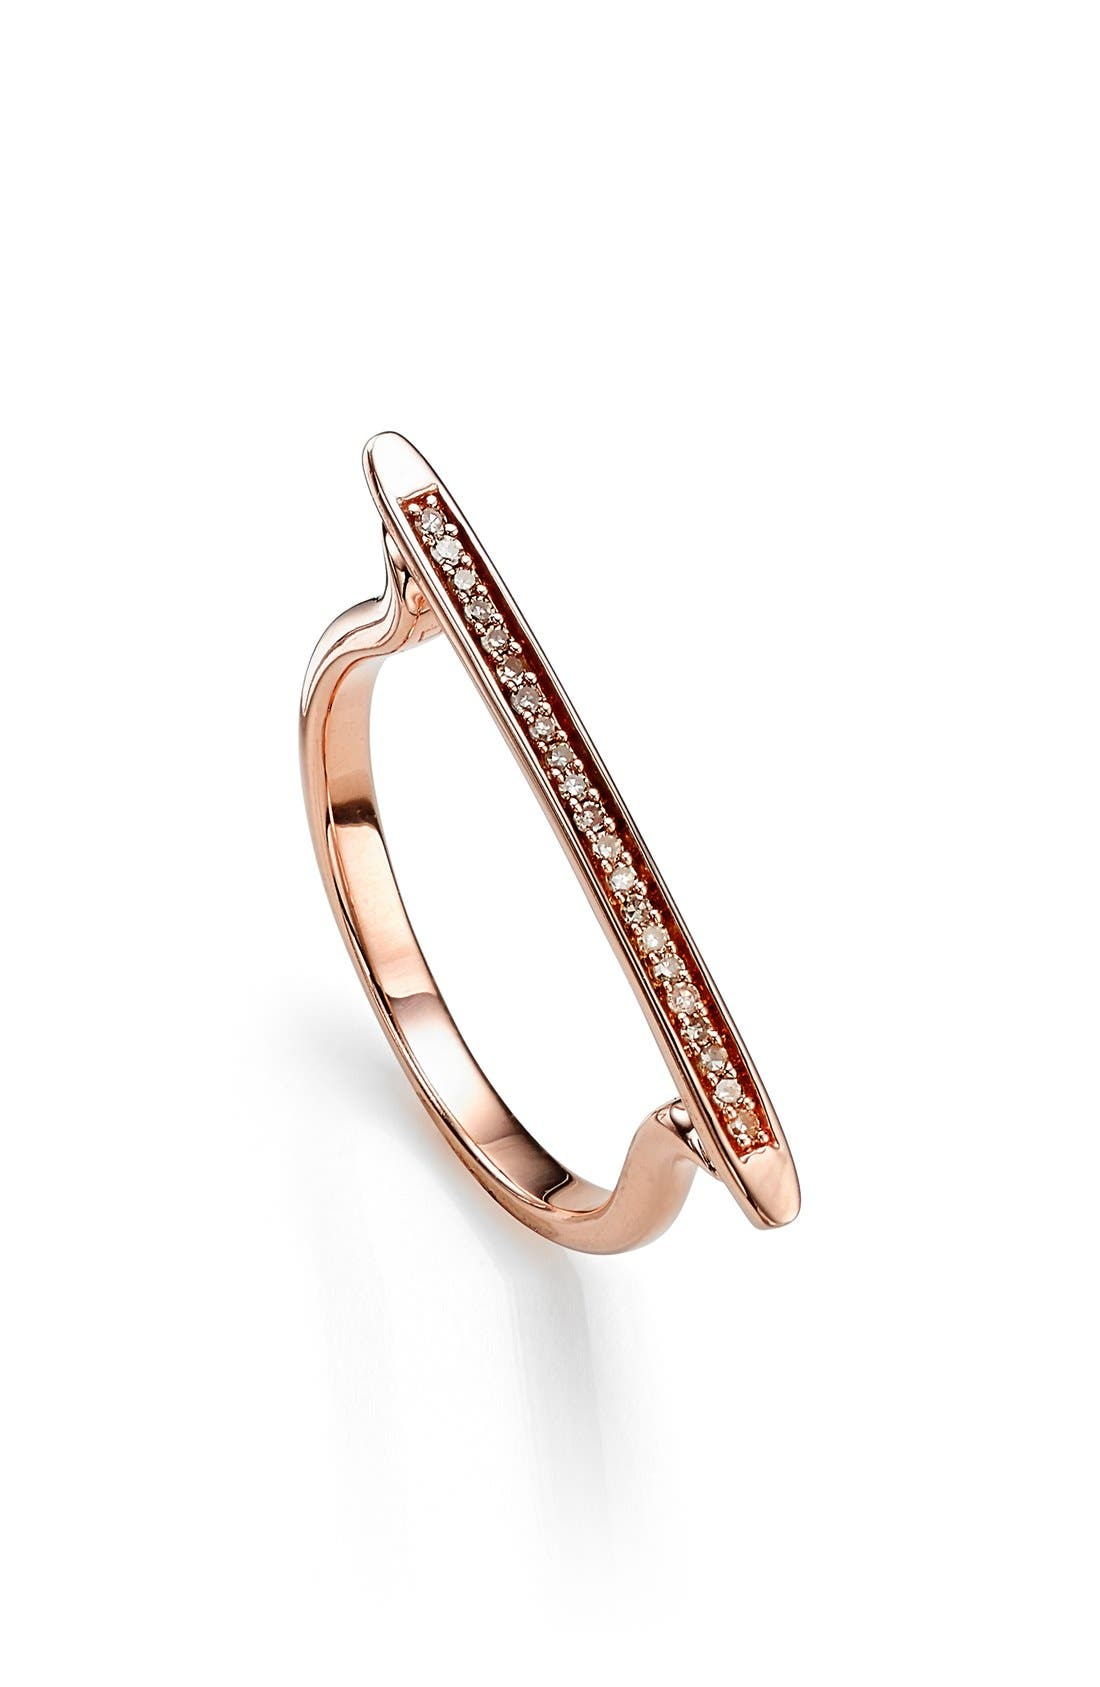 Main Image - Monica Vinader 'Skinny' Diamond Stacking Ring